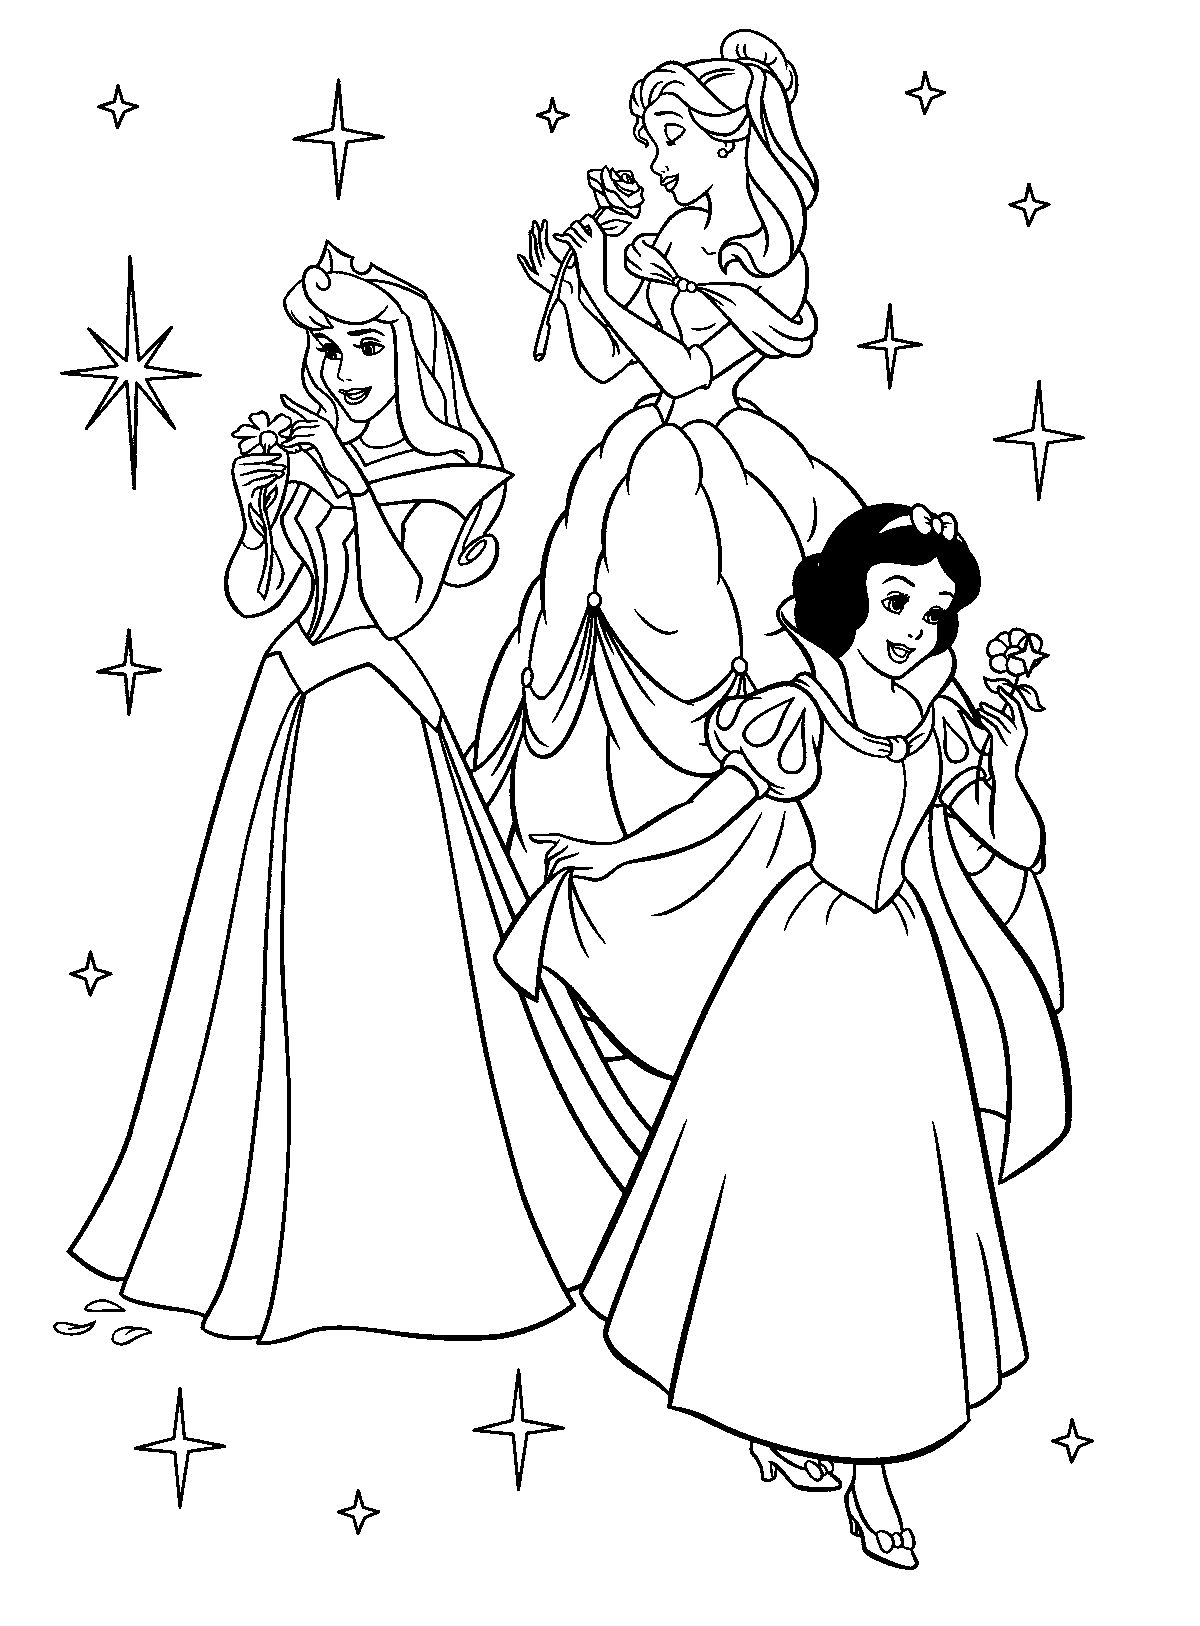 photograph relating to Princess Printable referred to as Cost-free Printable Disney Princess Coloring Internet pages For Young children